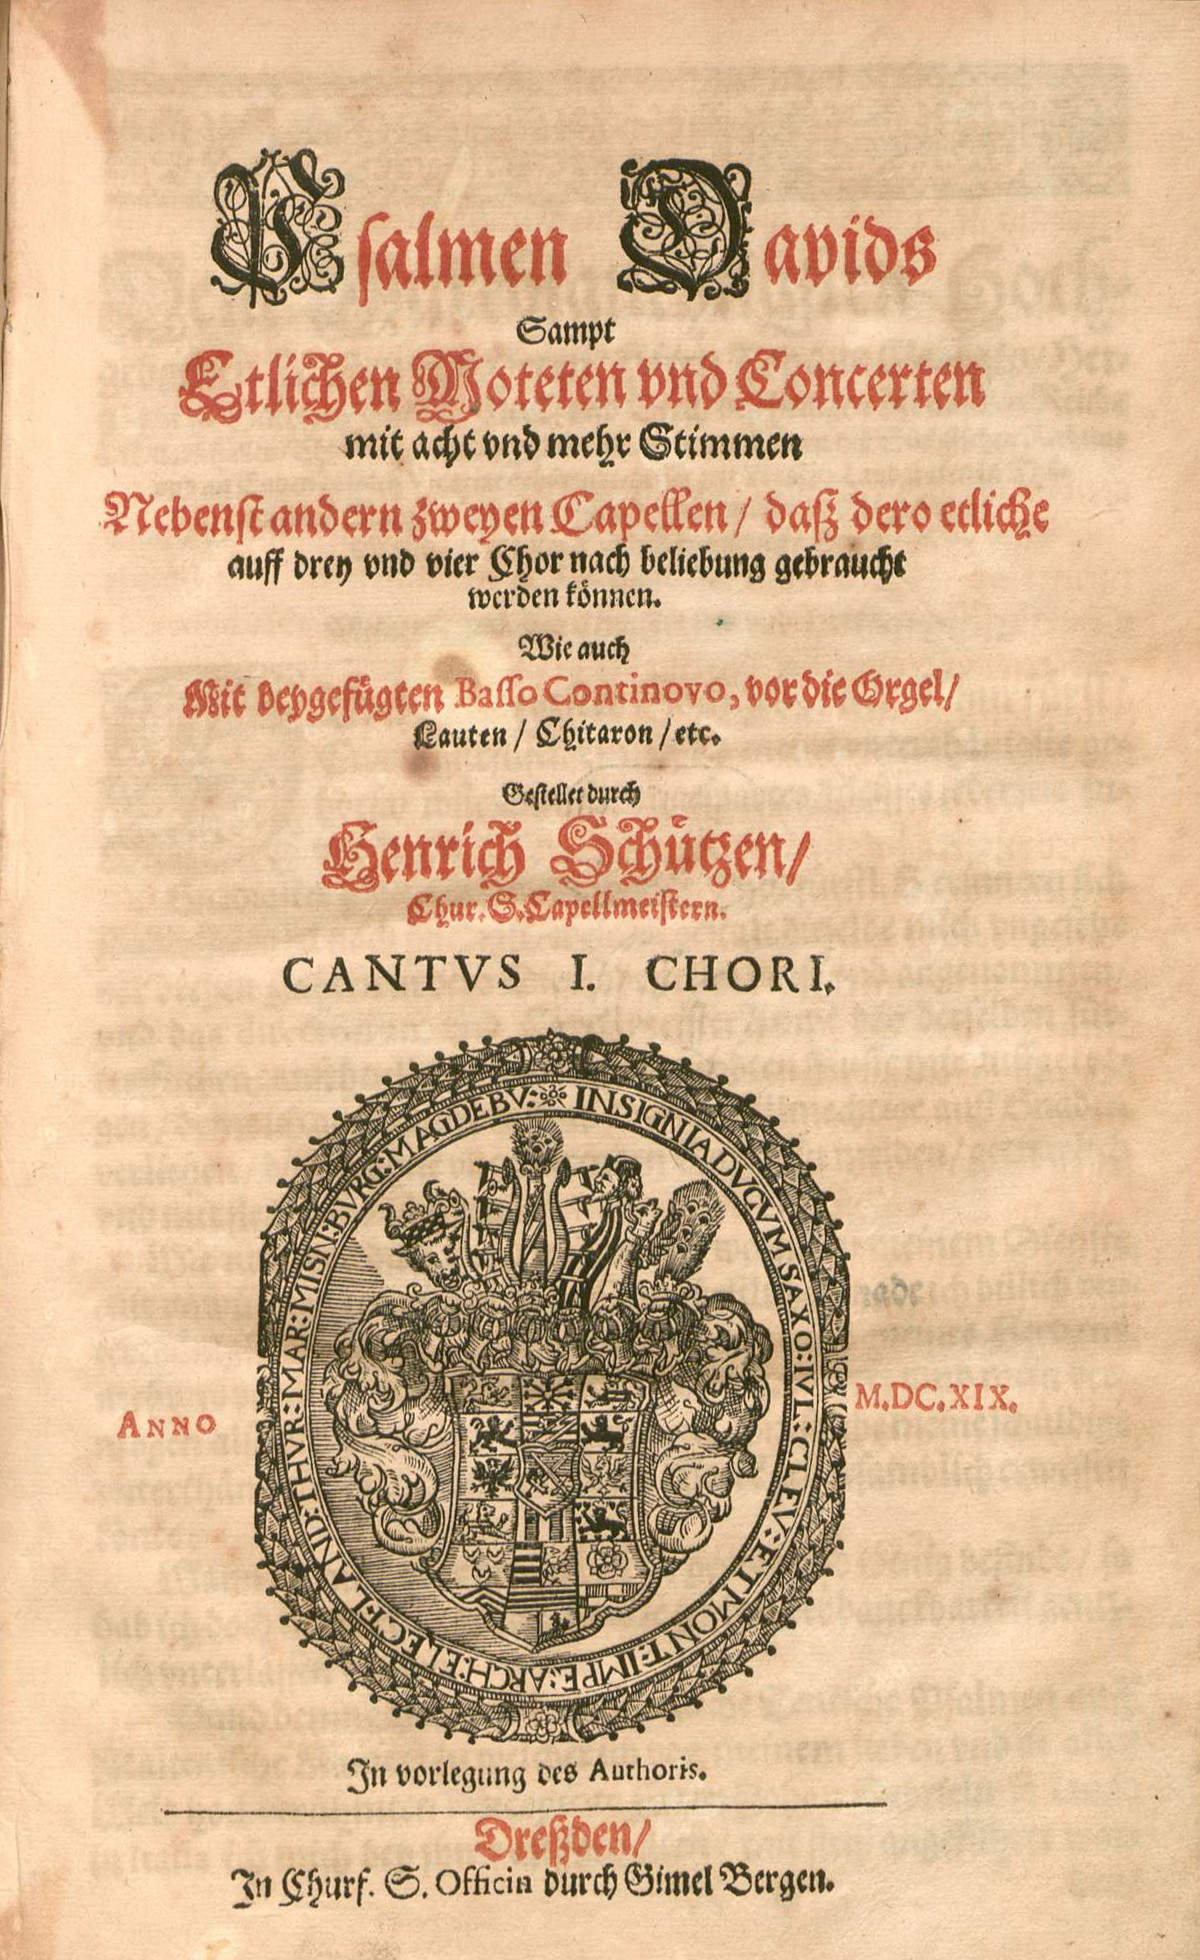 The original title page of Psalmen Davids